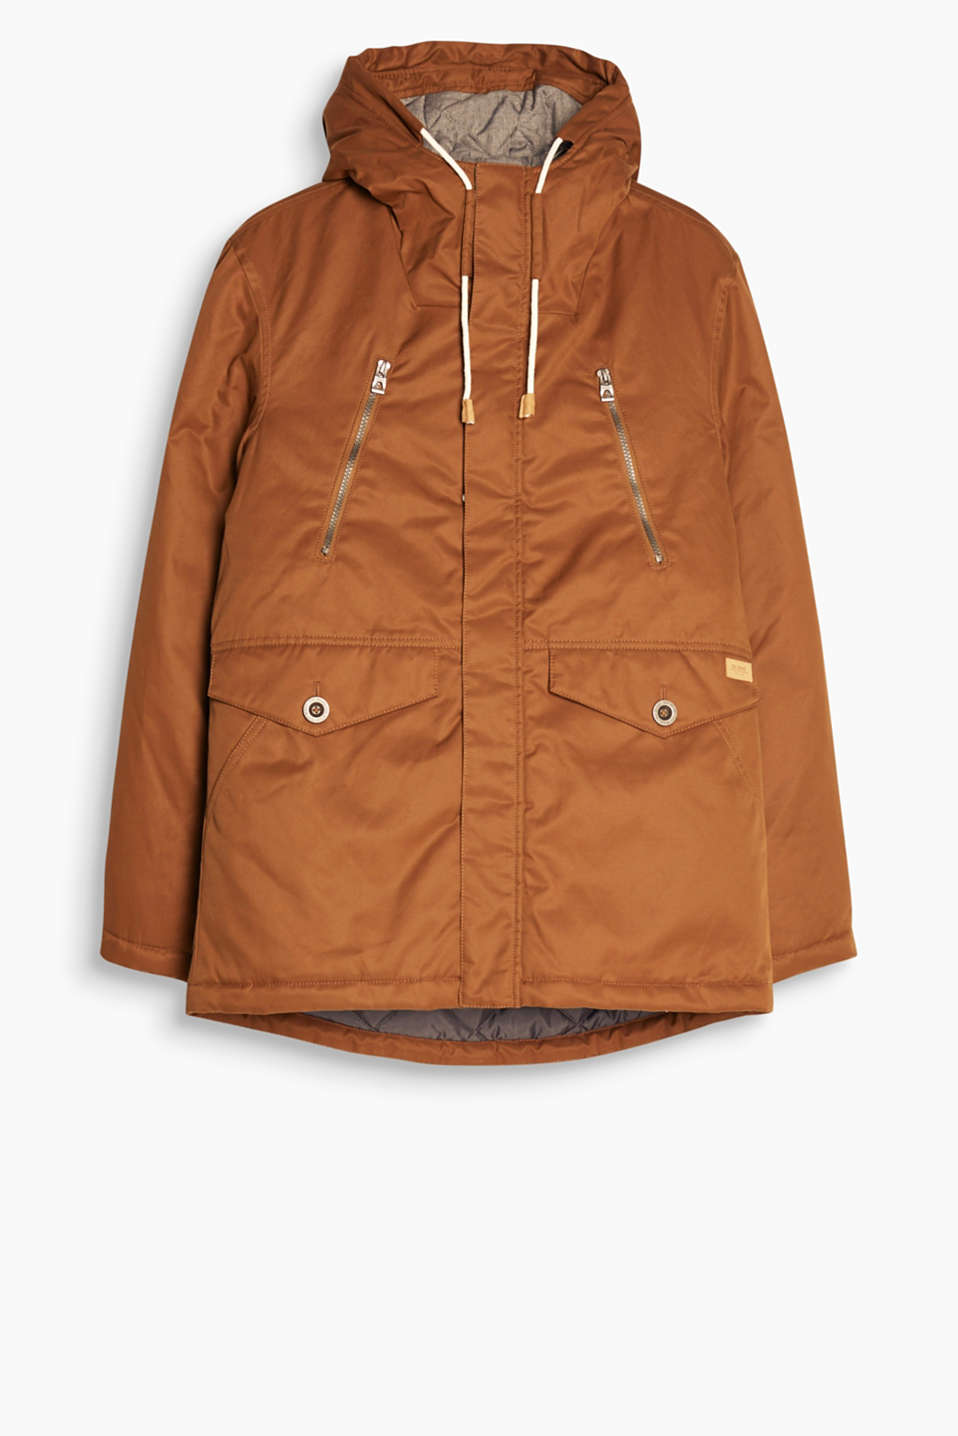 Look cool, stay warm! A timeless parka with a drawstring hood and fine detailing